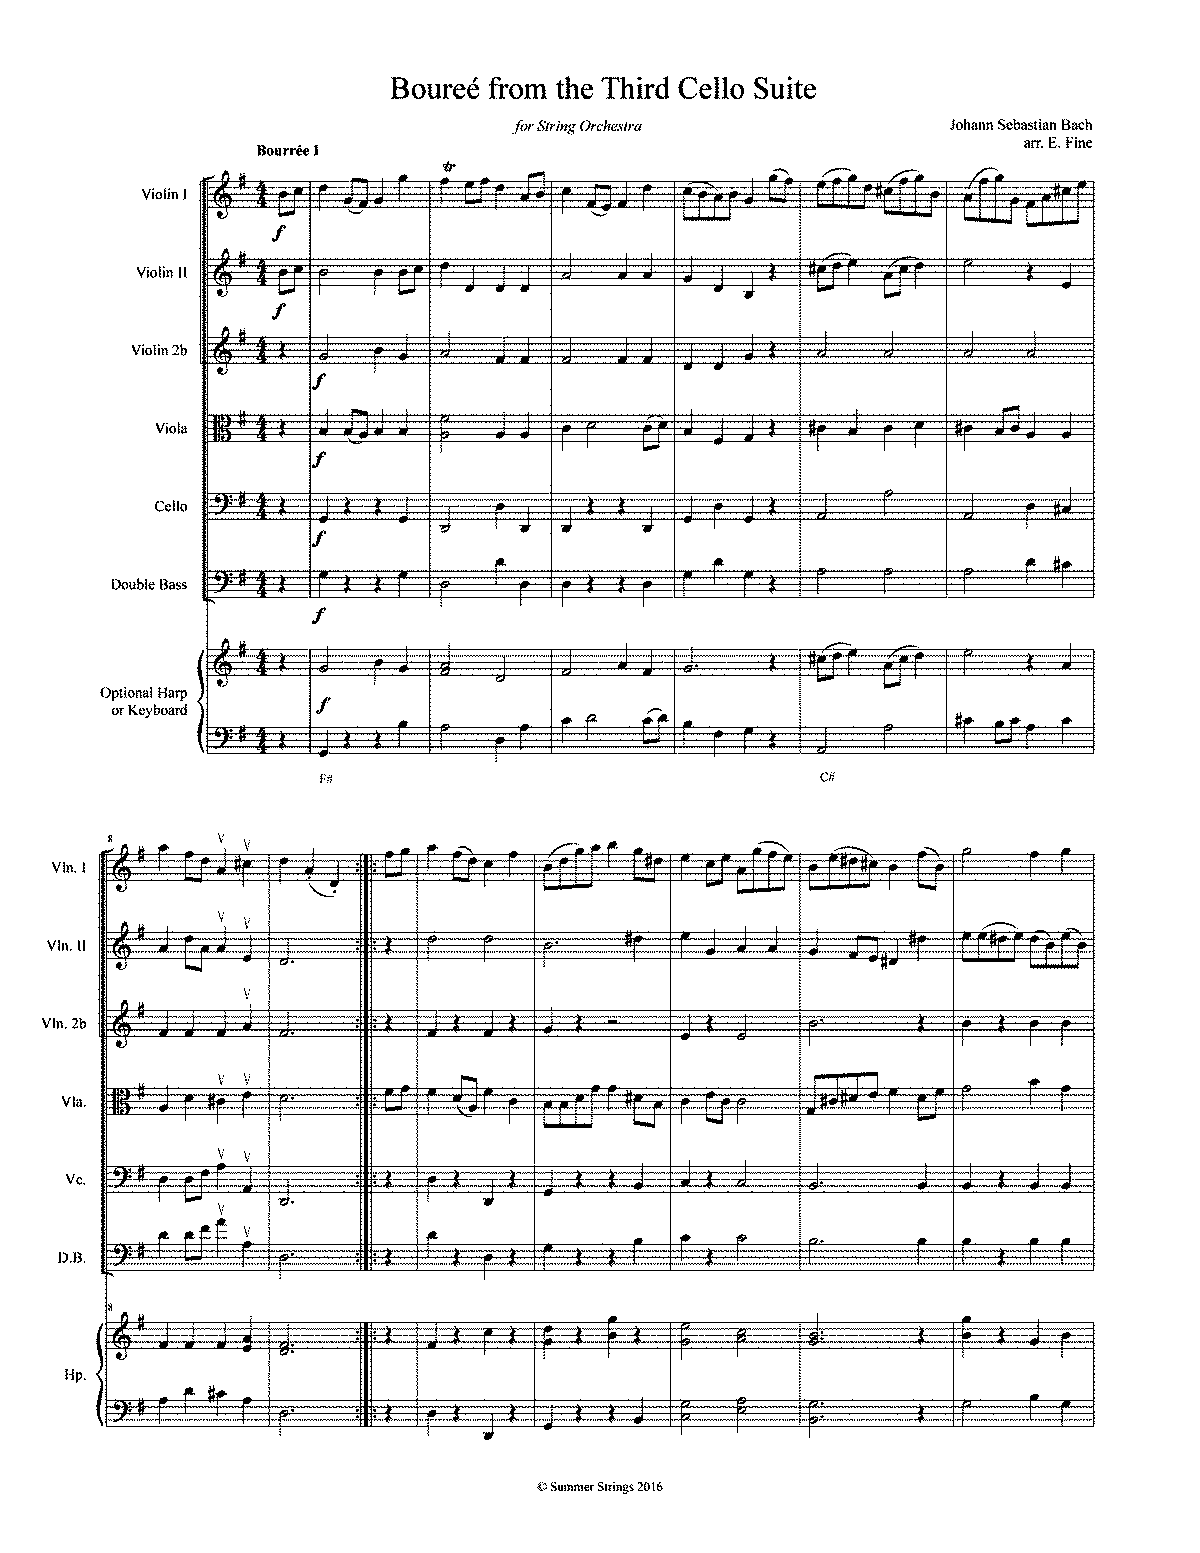 PMLP04291-Bach Bouree from Third Cello Suite for String Orchestra Score and Parts.pdf